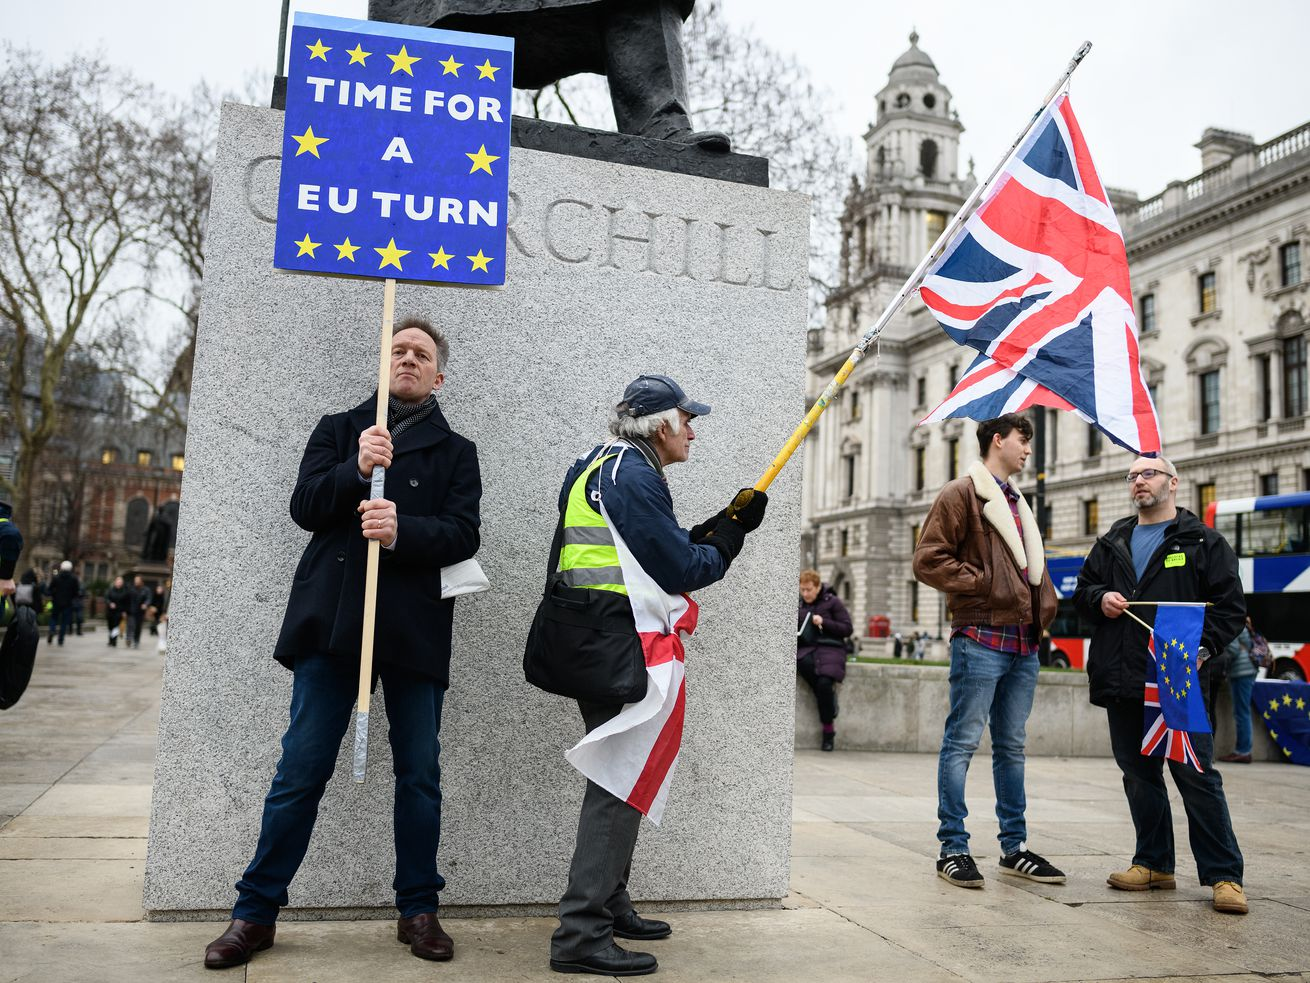 Pro-Remain and pro-Brexit protesters outside Parliament on January 15, 2019.